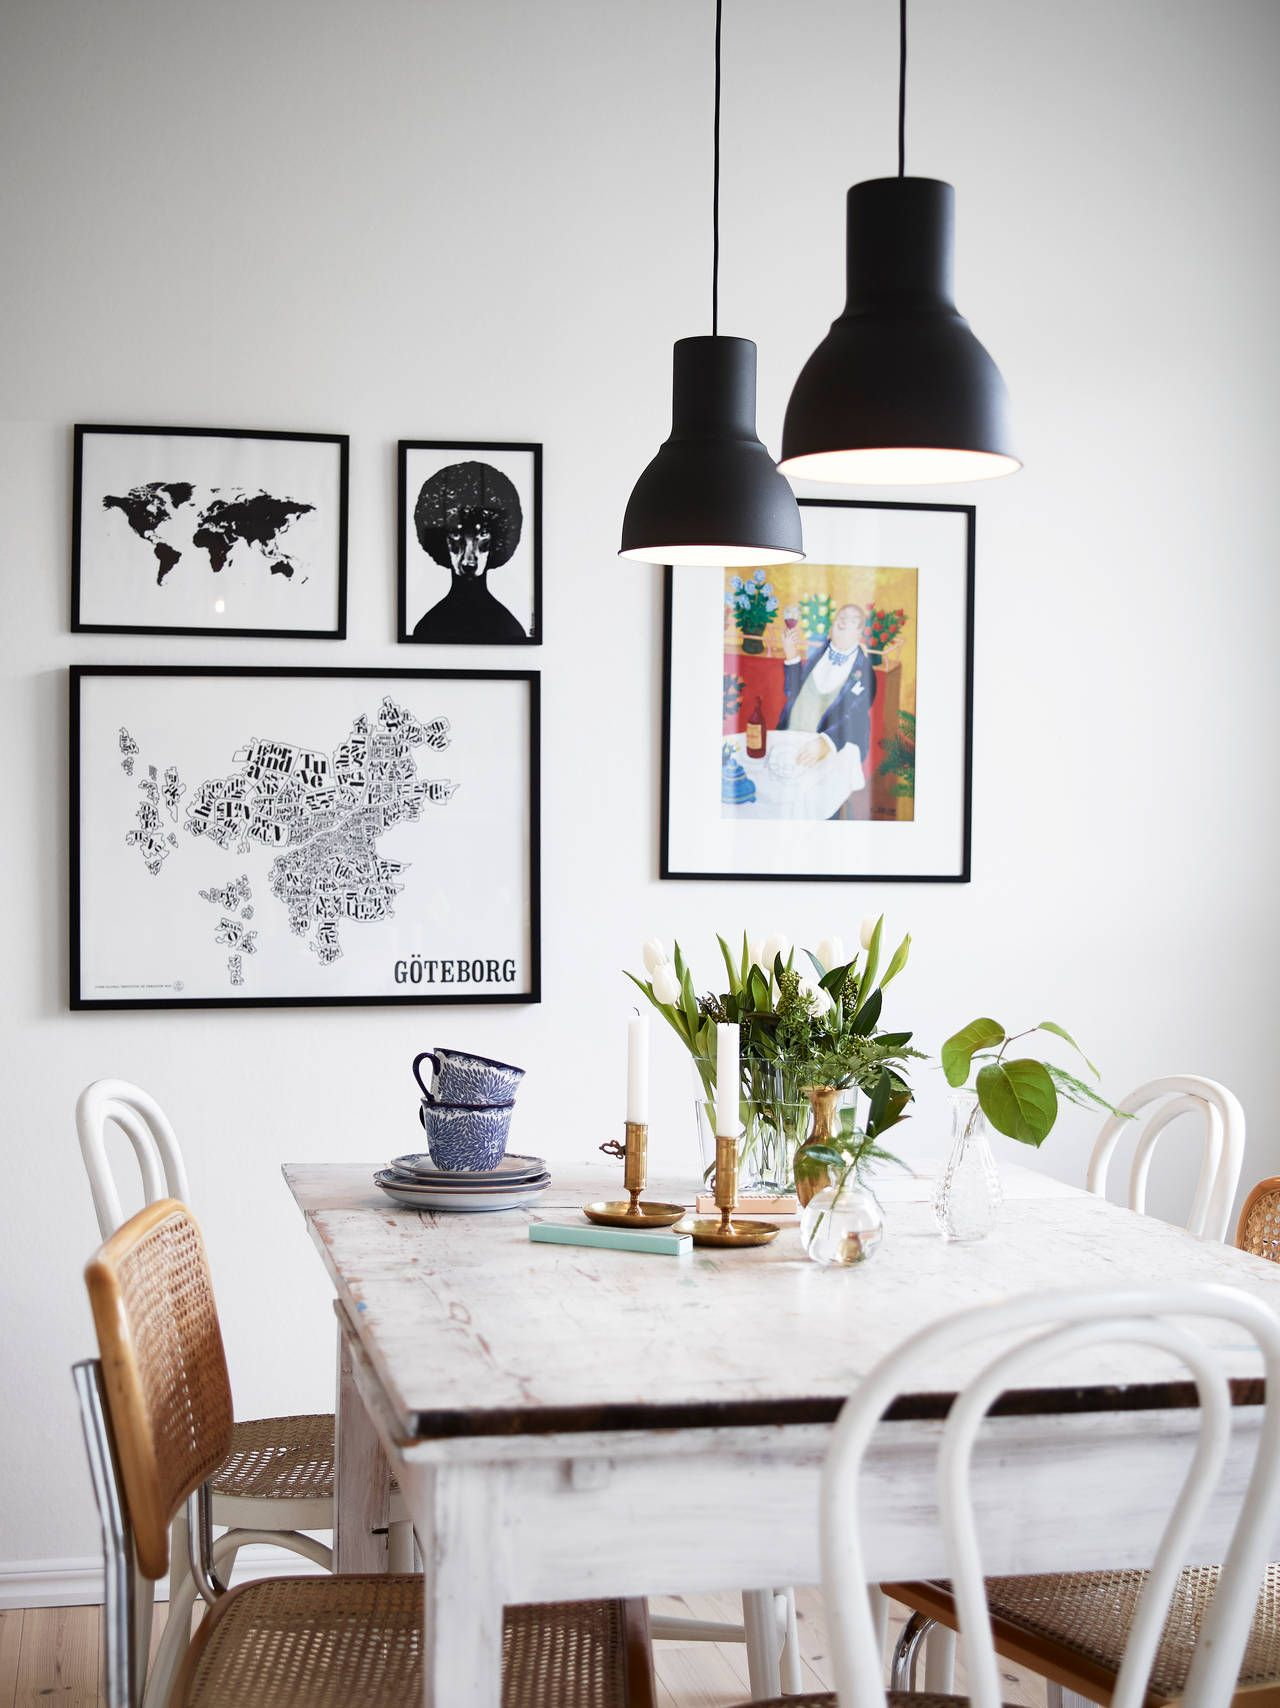 Global wall art for a dining area home pinterest dining area